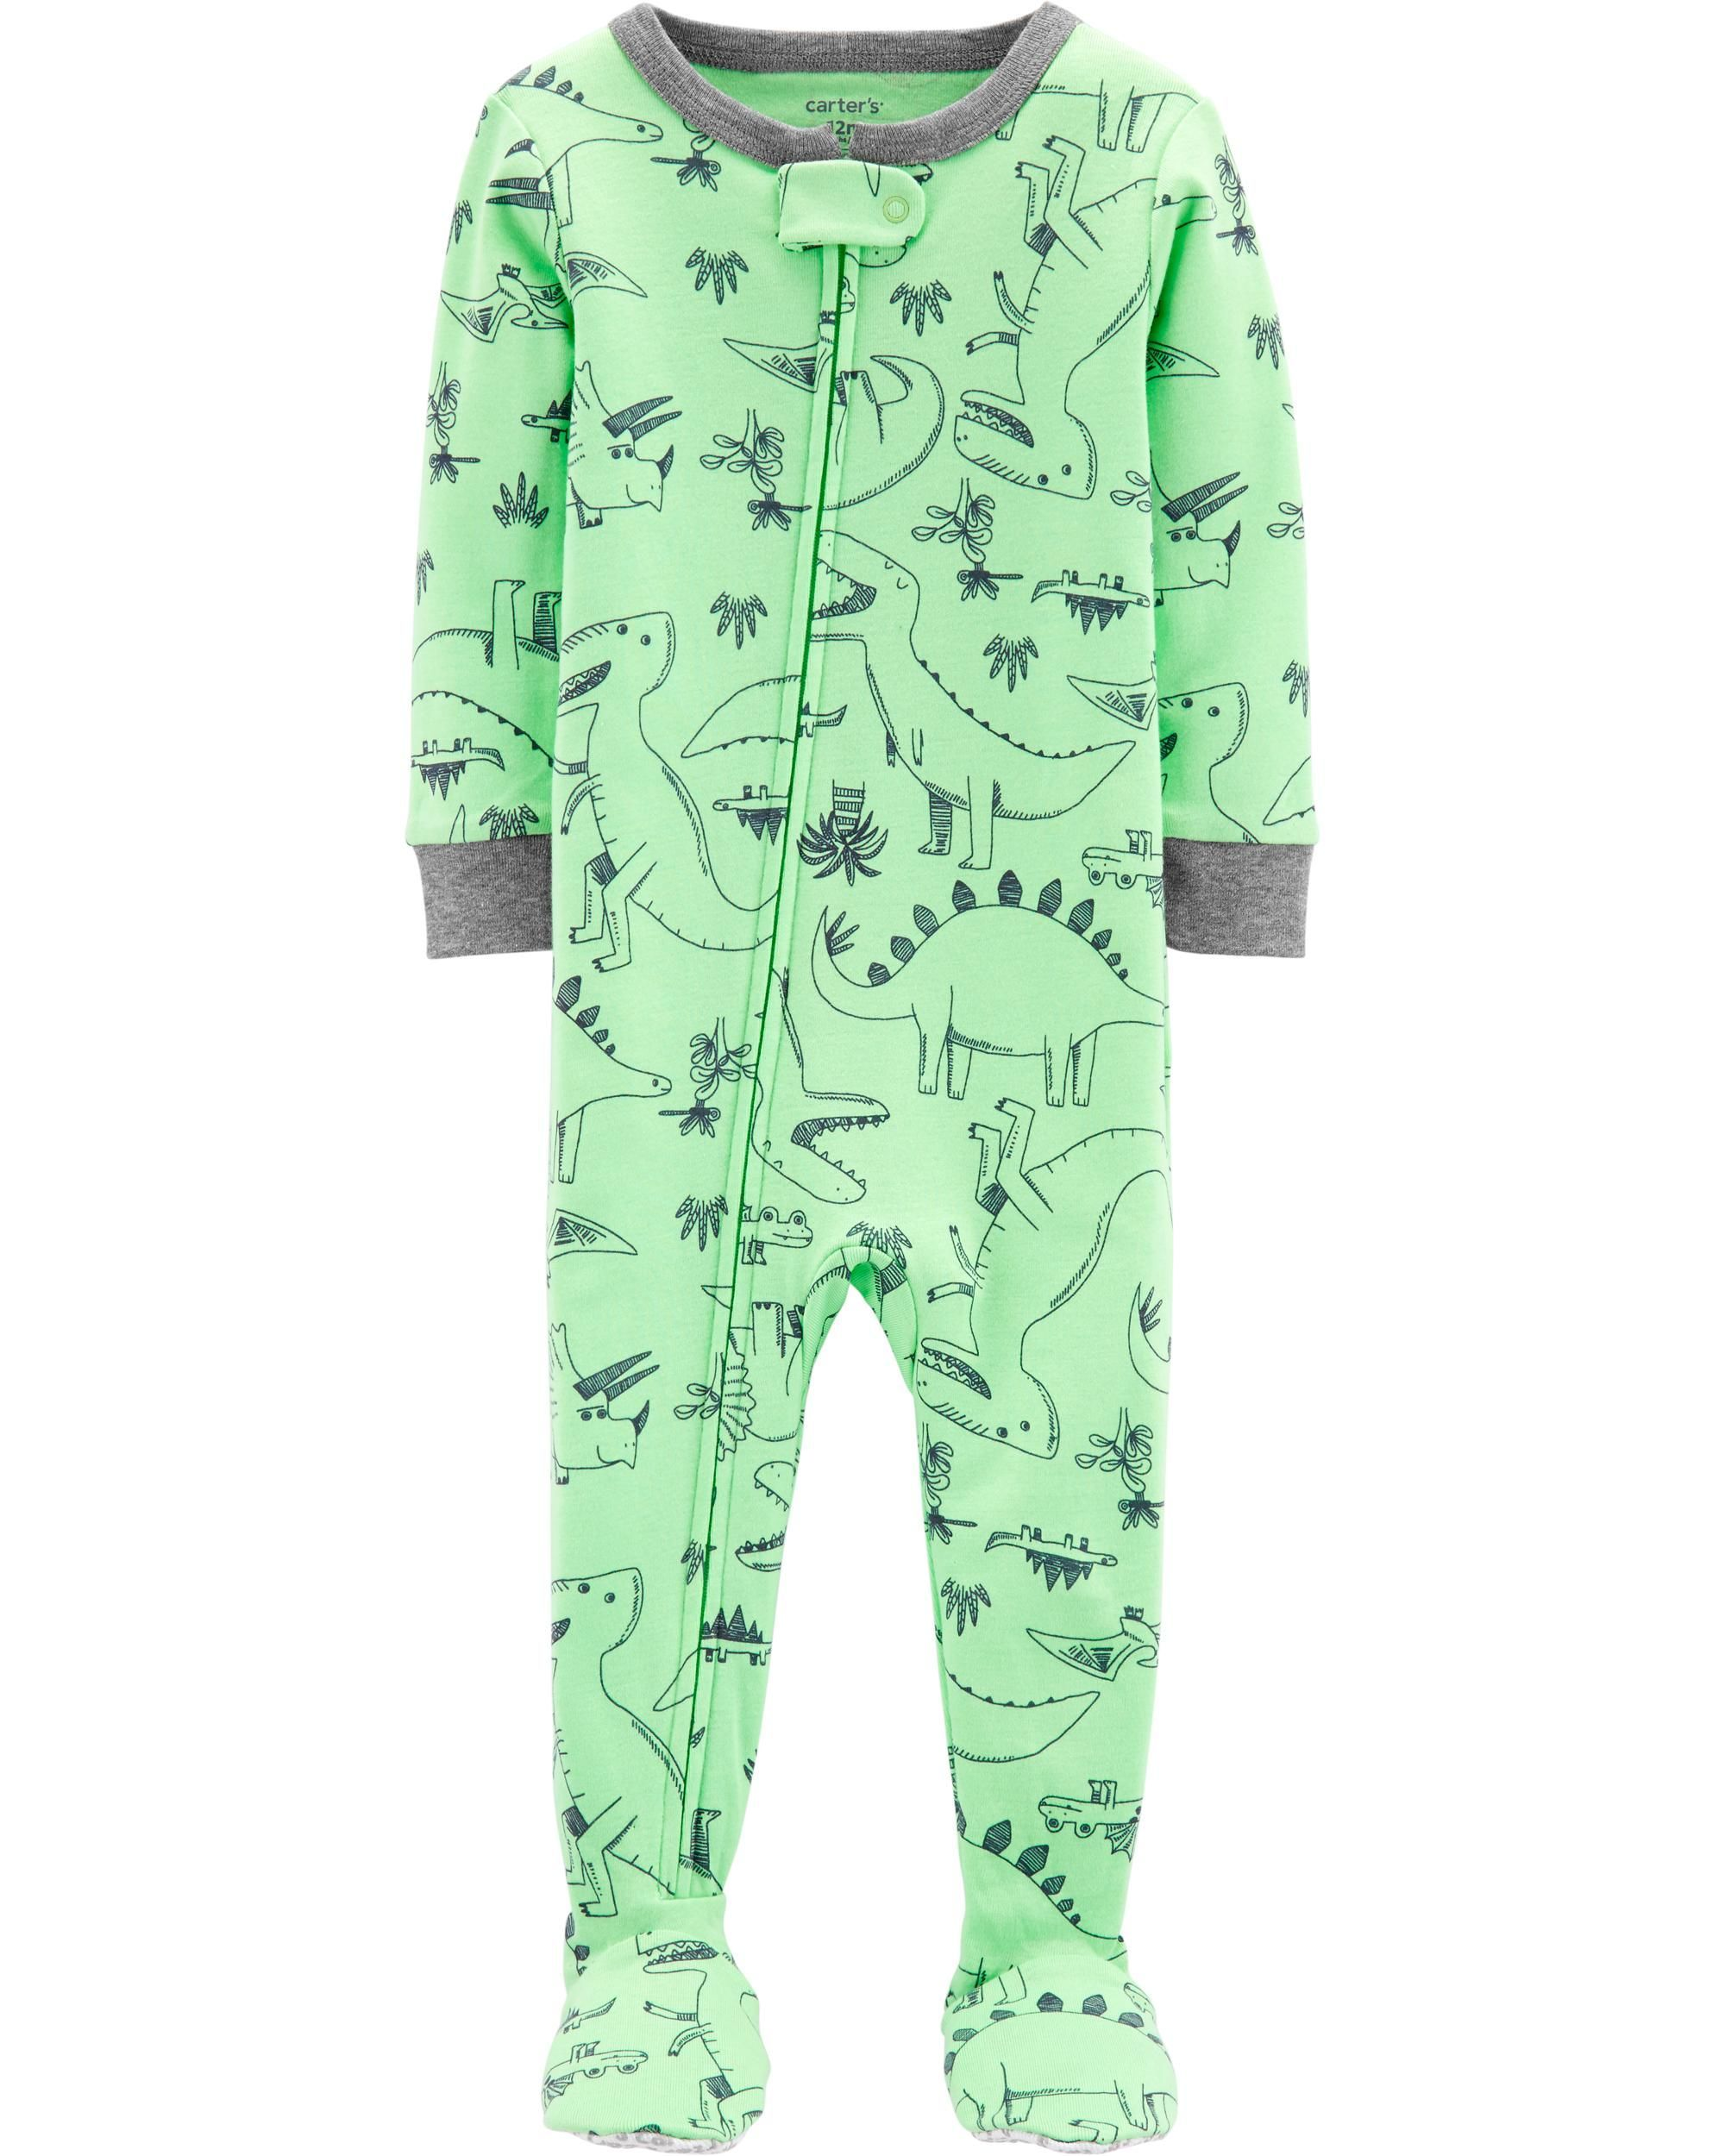 6eef0a2703c0 1-Piece Dinosaur Snug Fit Cotton Footie PJs